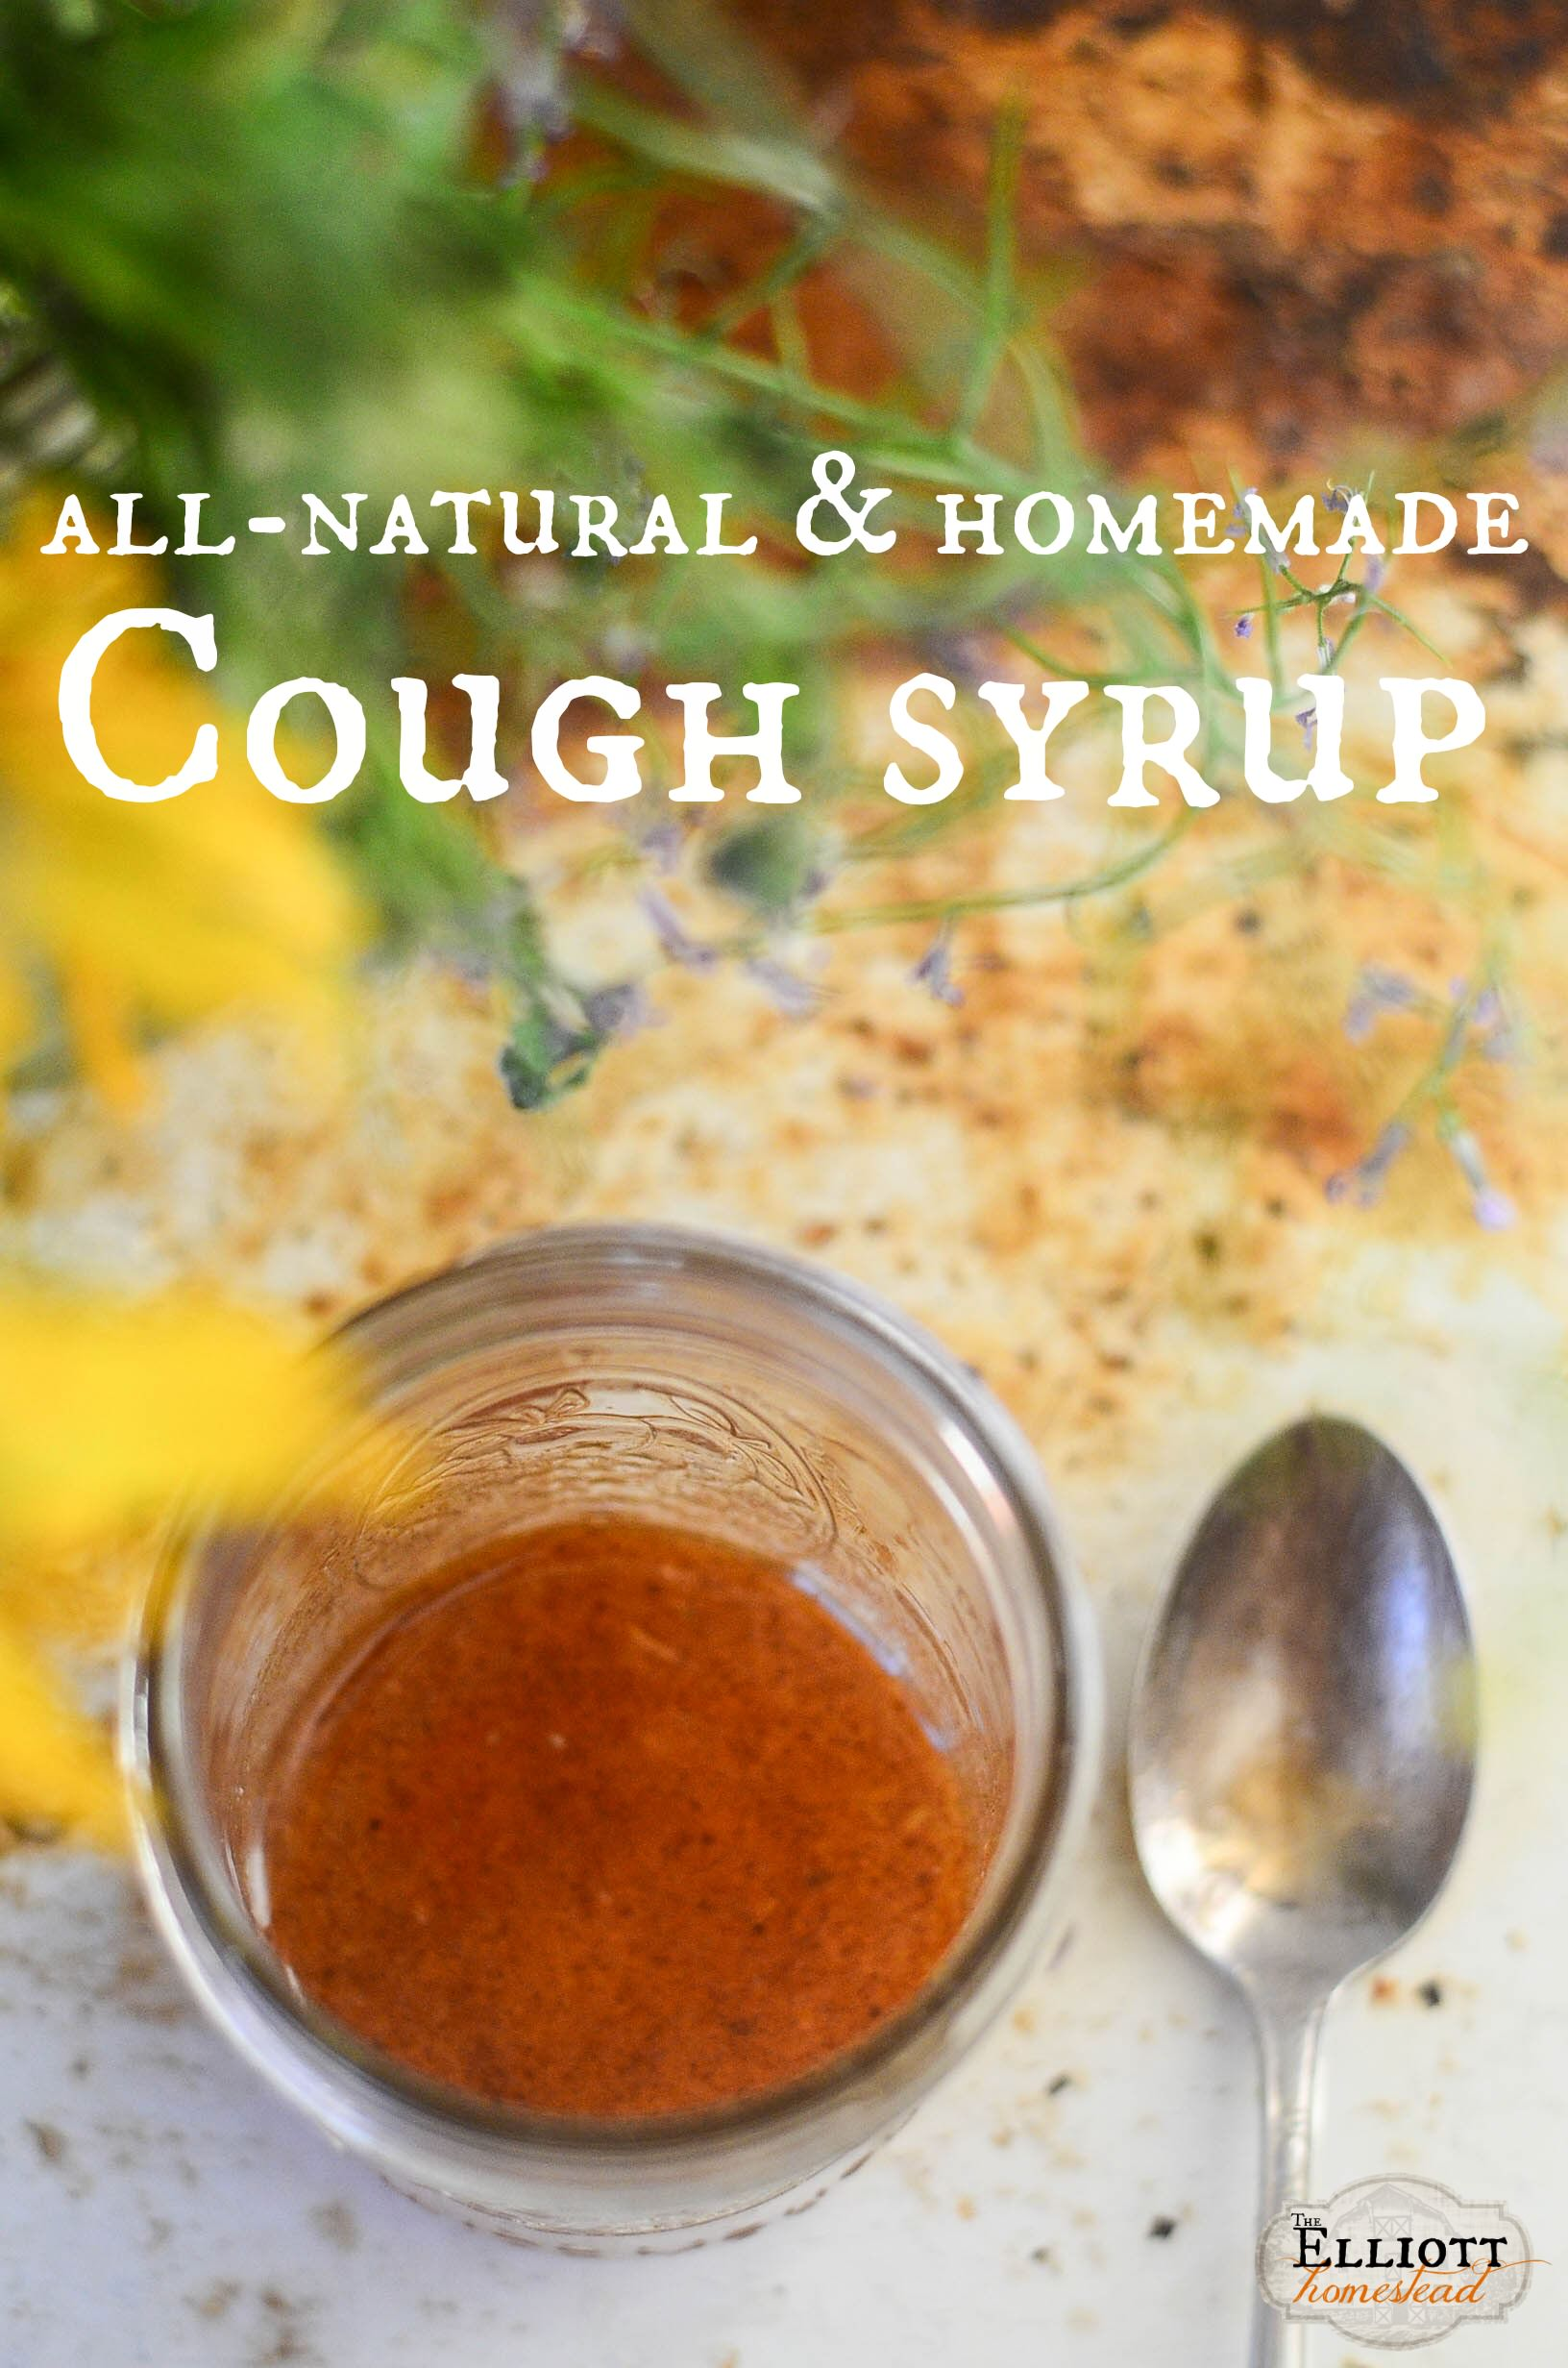 Homemade Cough Syrup Recipe - The